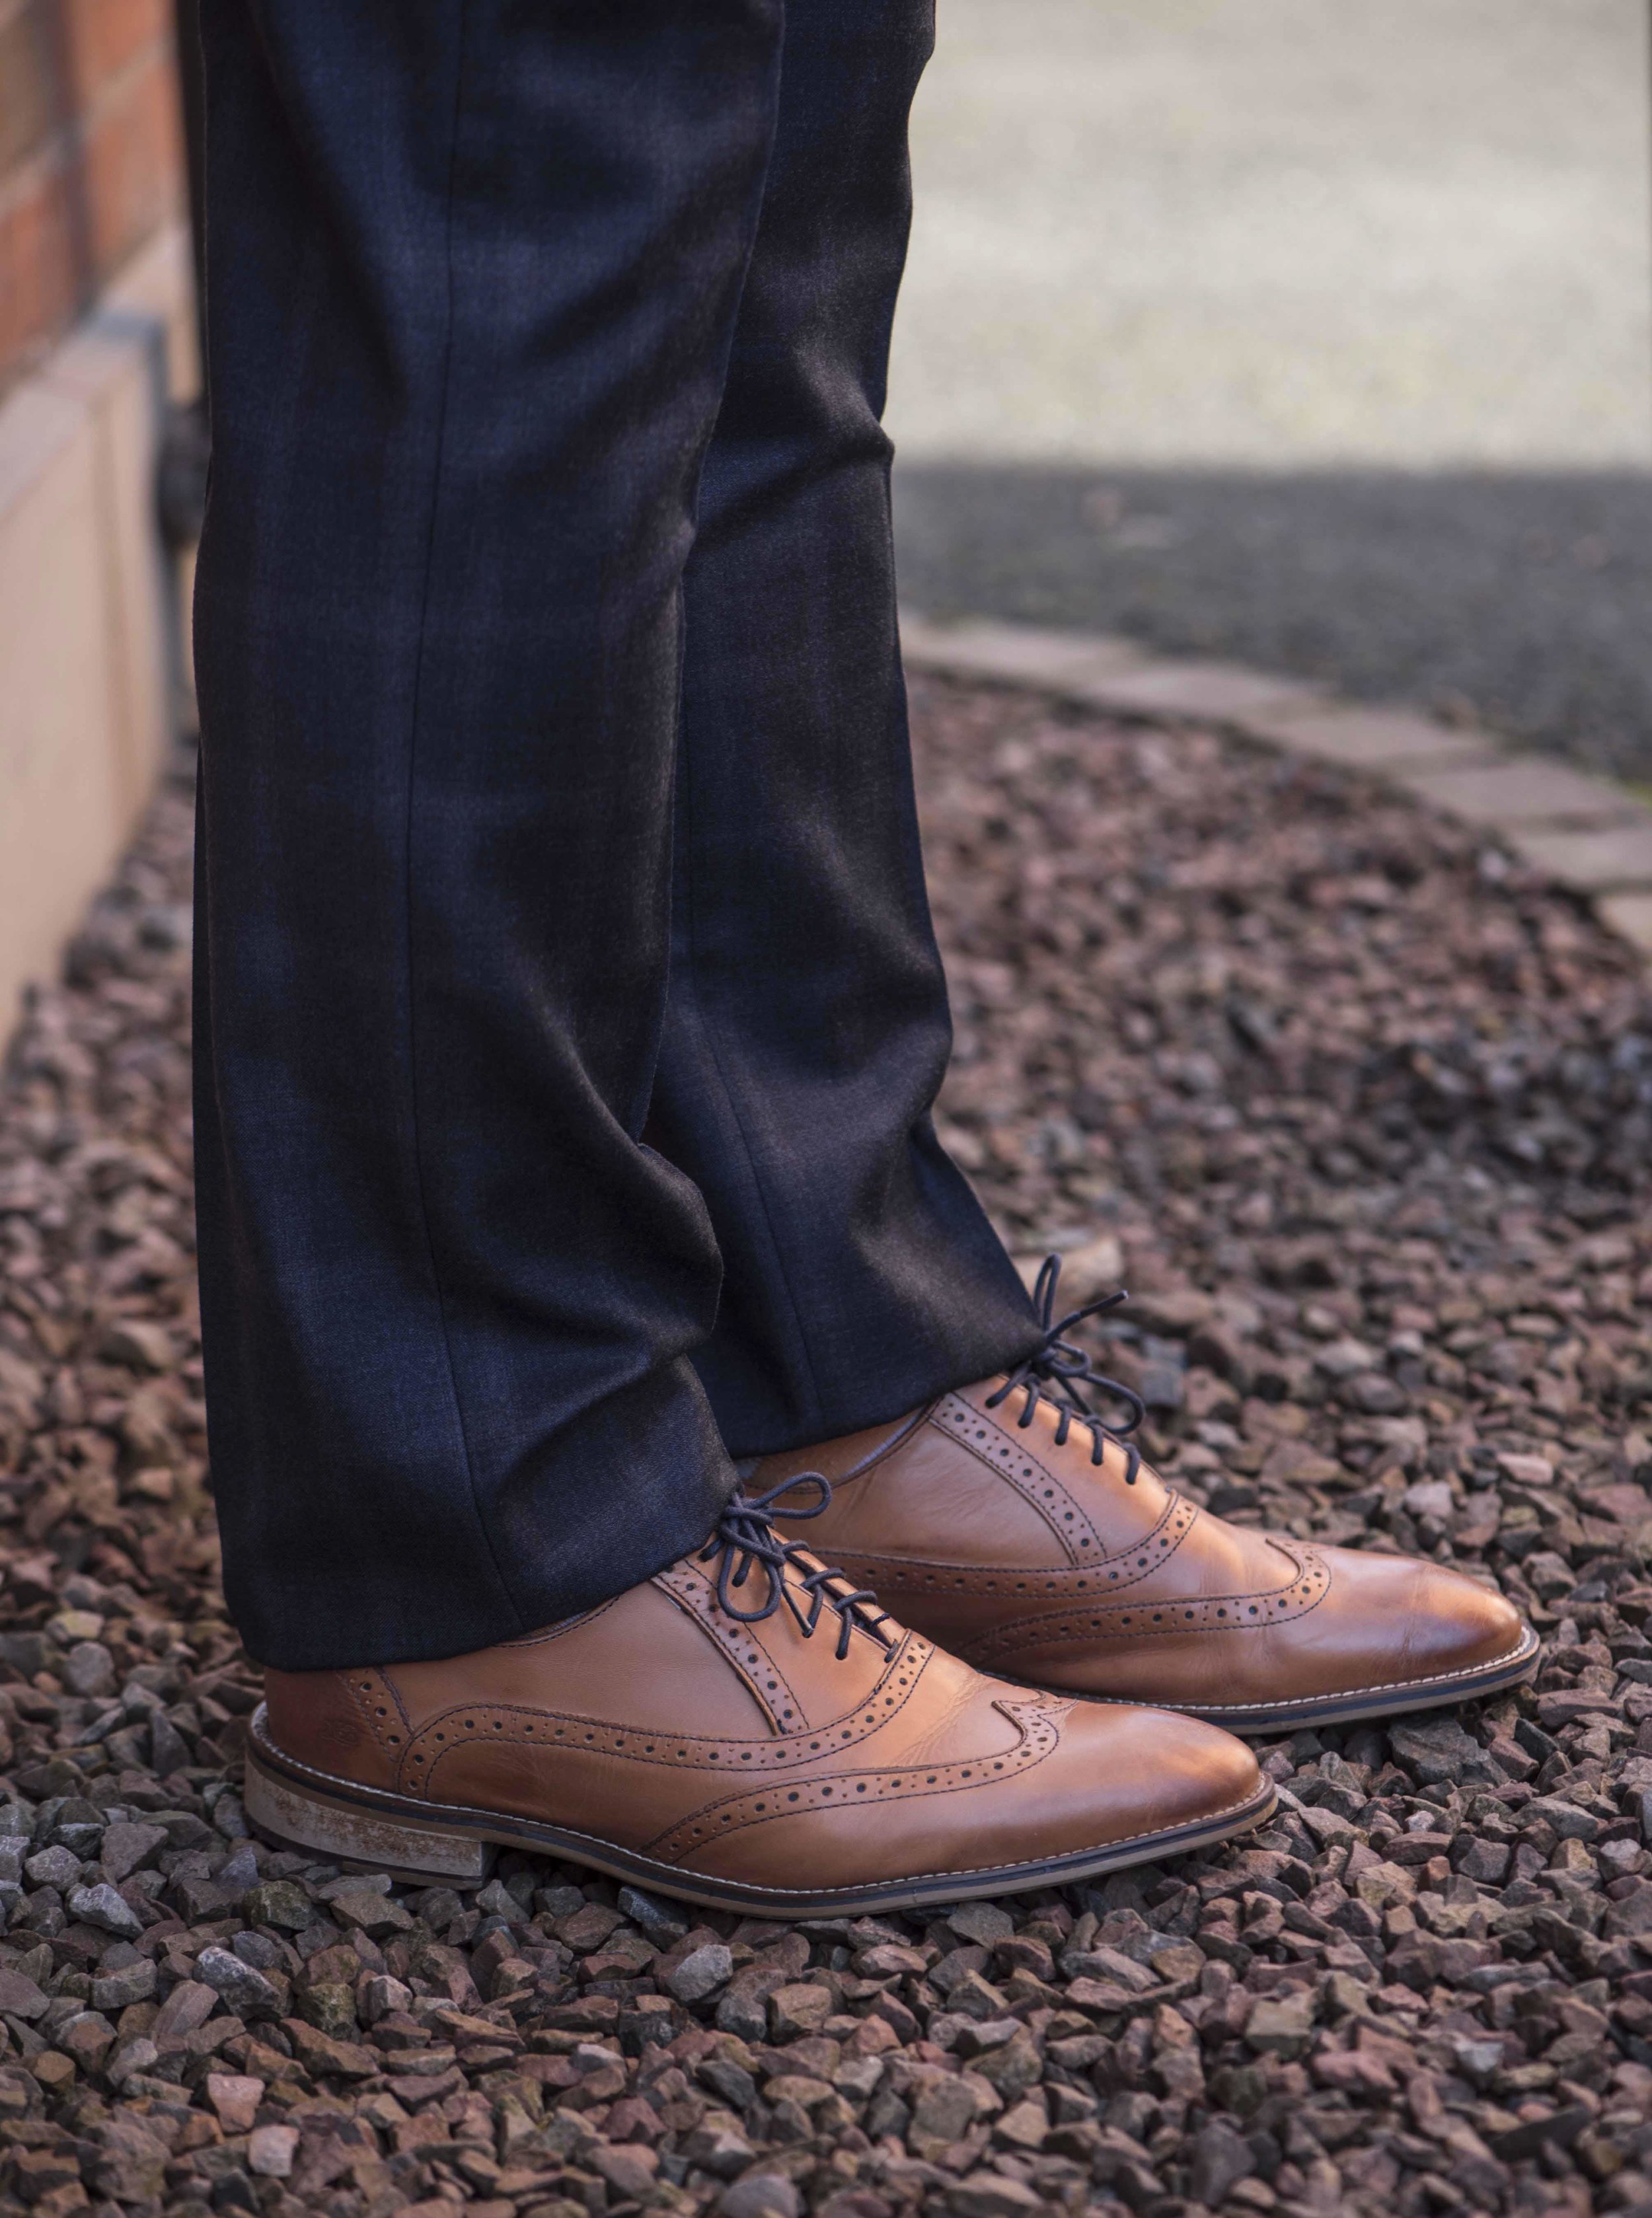 Checked trousers and tan mens shoes.jpg